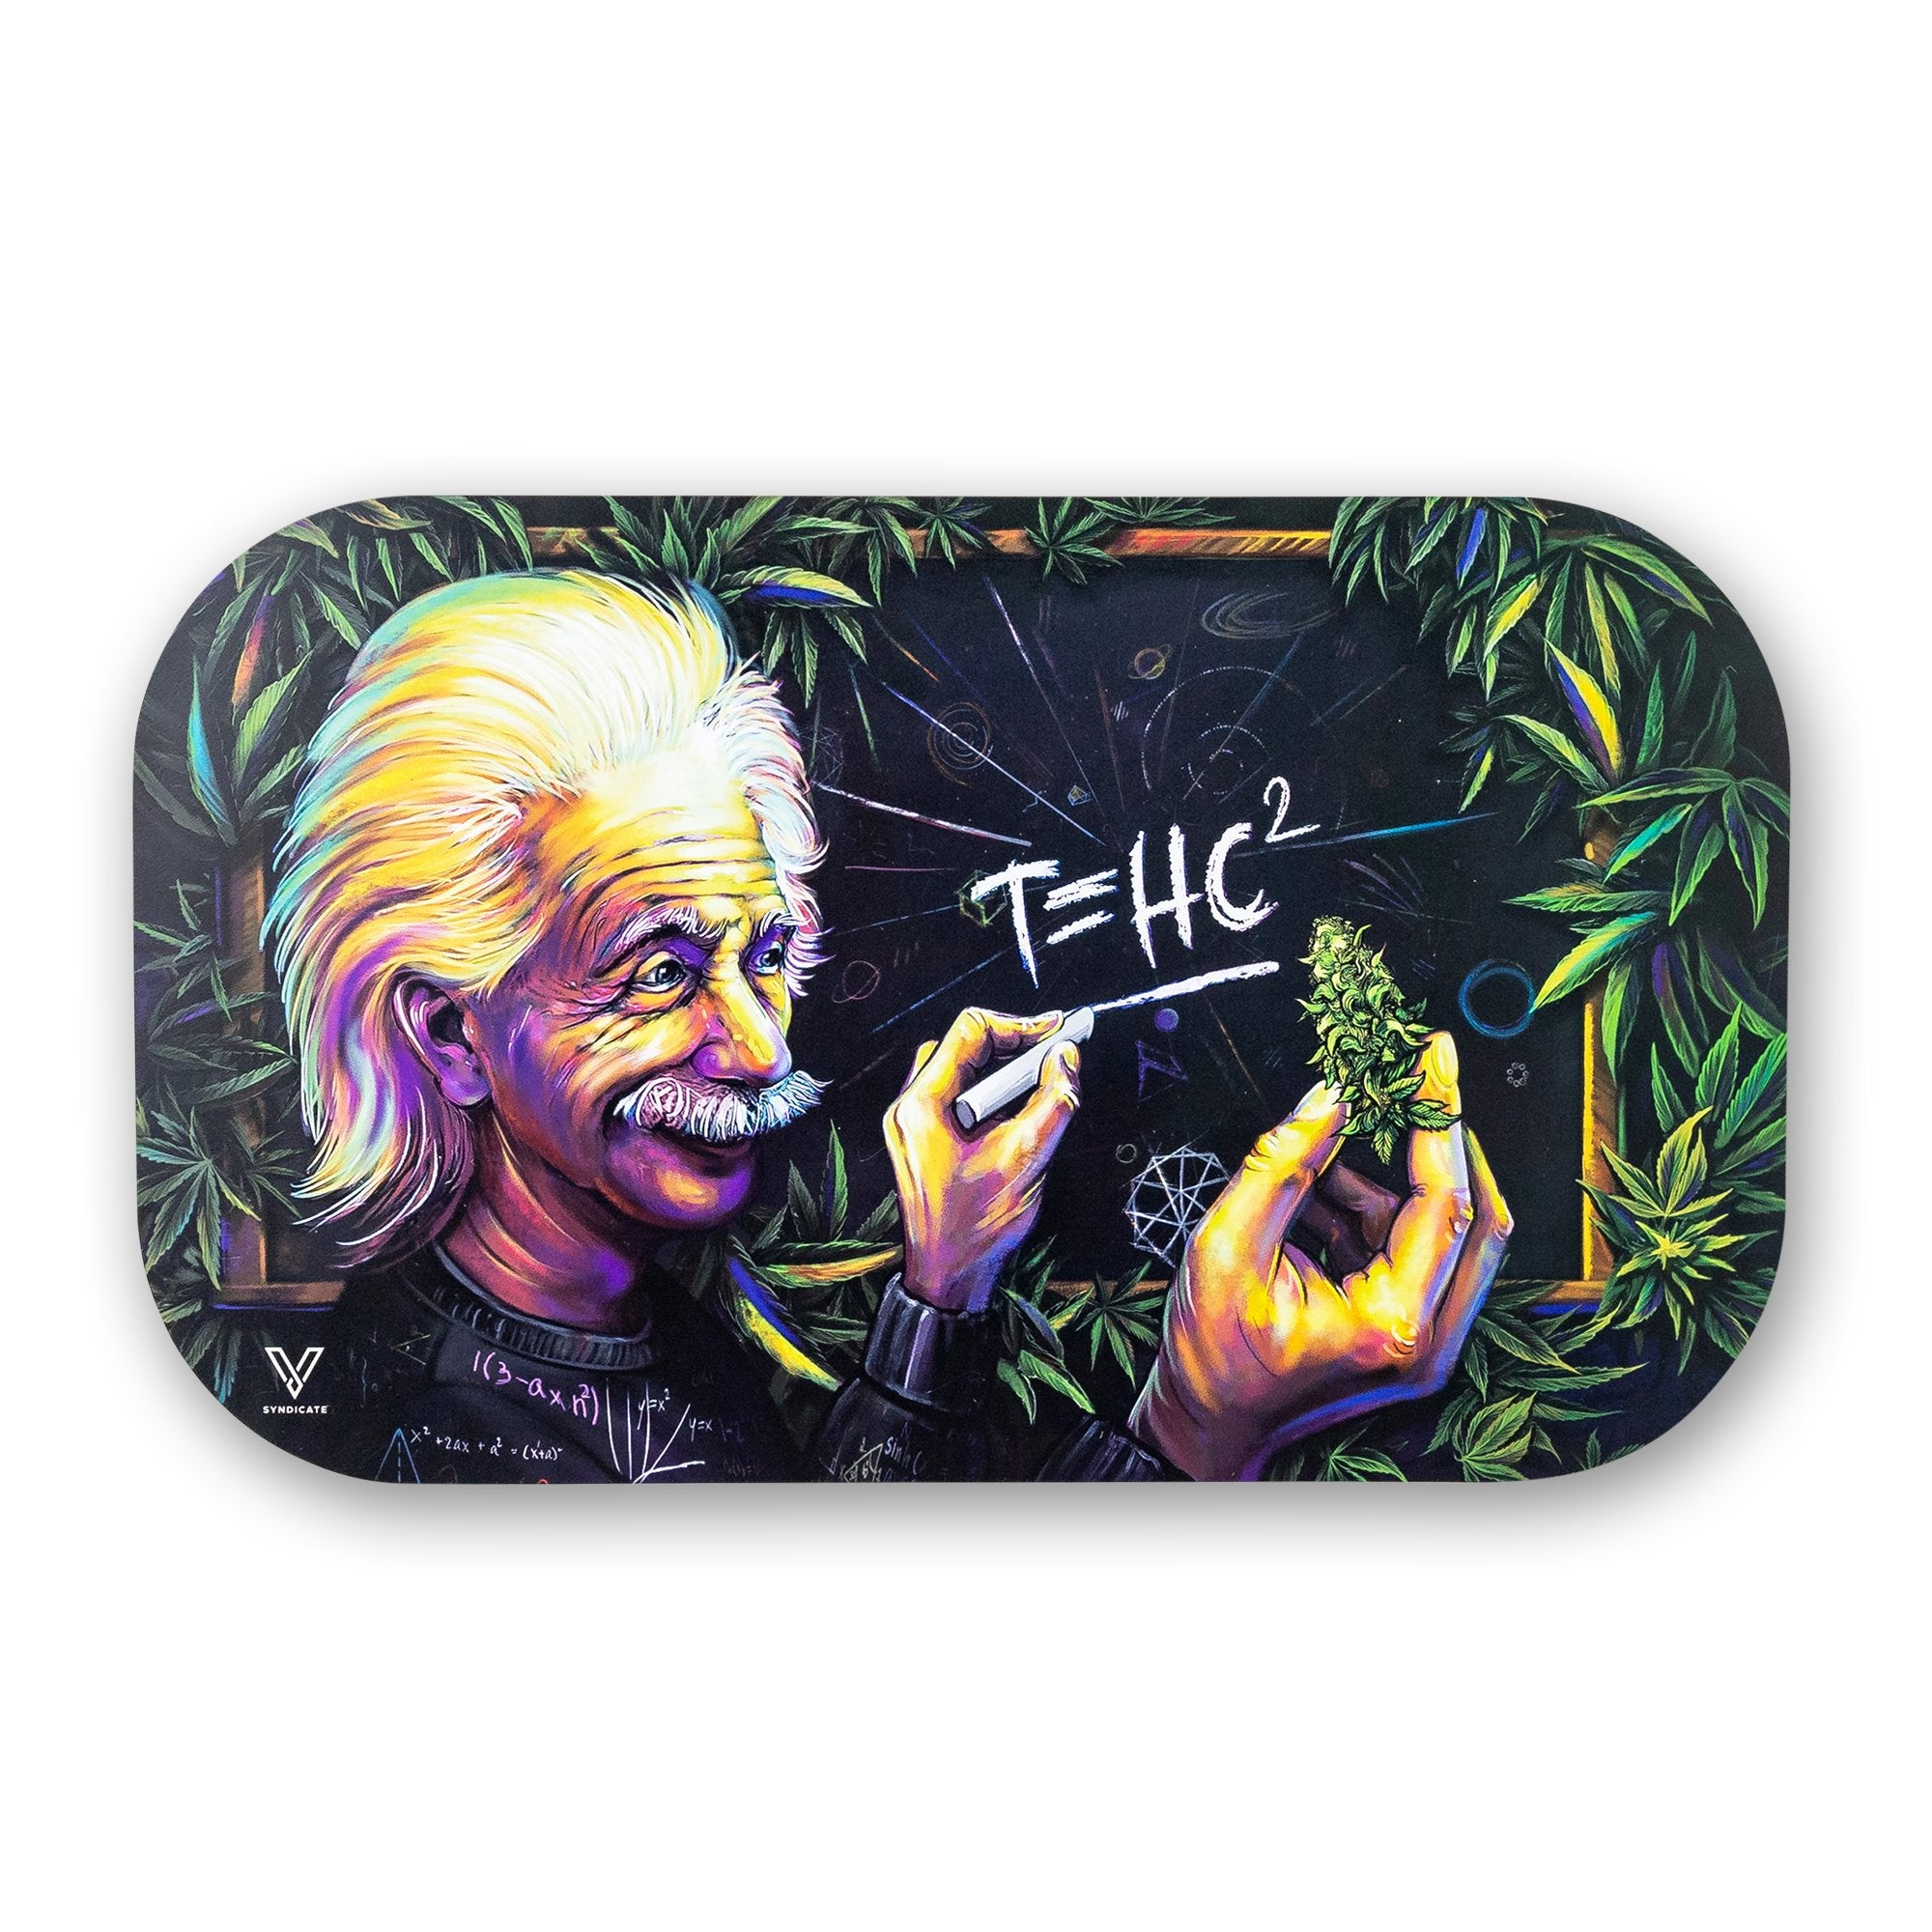 11 inch mag slap in Albert Einstein holding cannabis writing T=HC2 with chalk design cannabis leaves as border